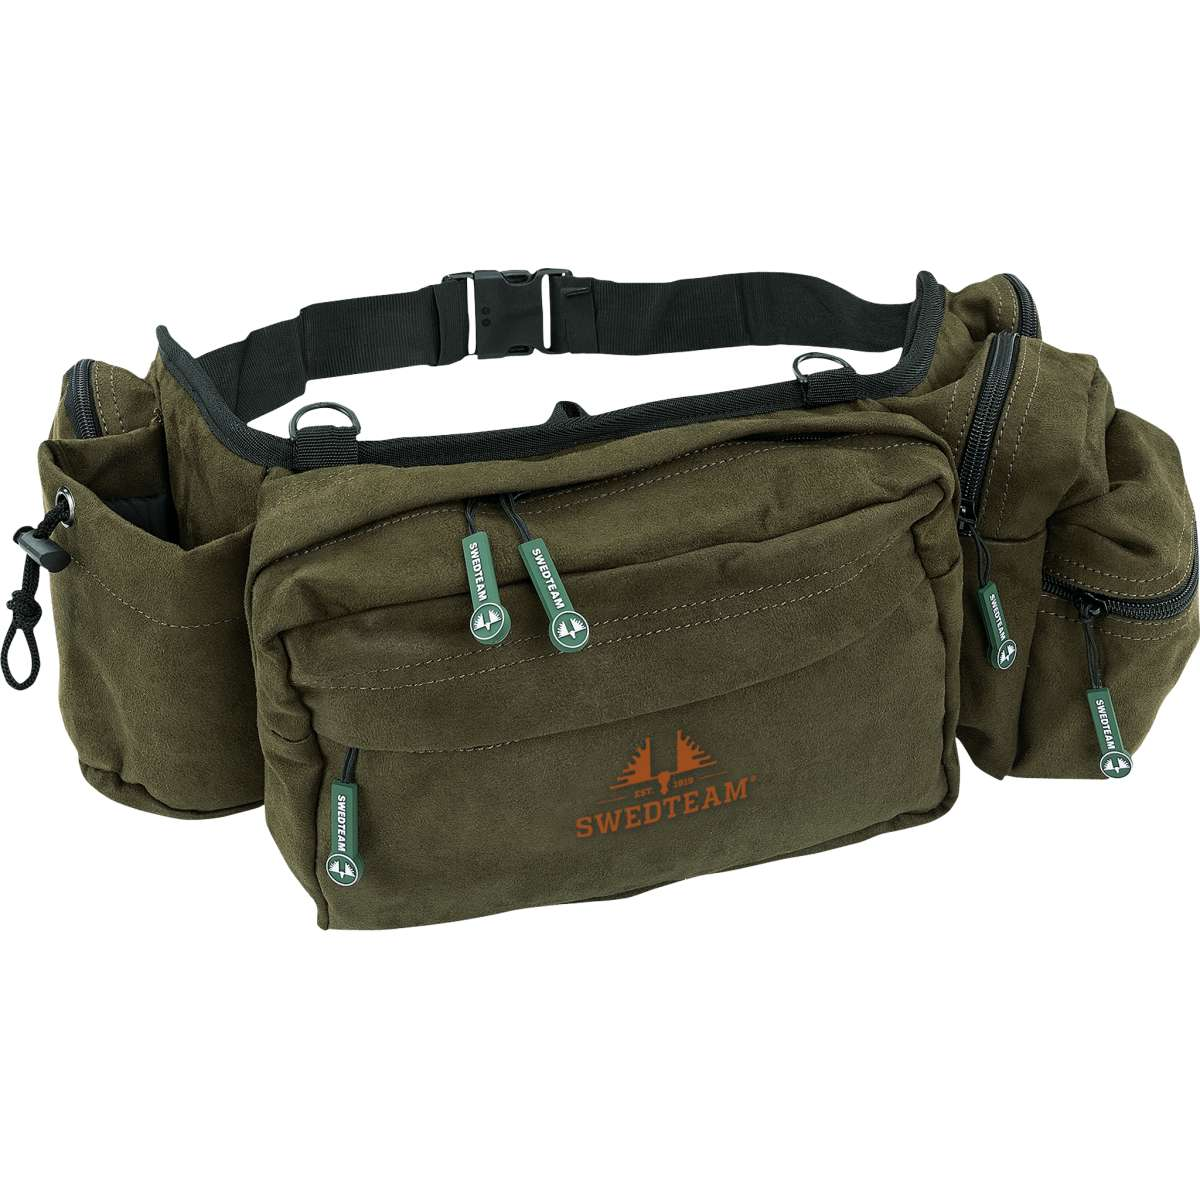 Swedteam Waistbag